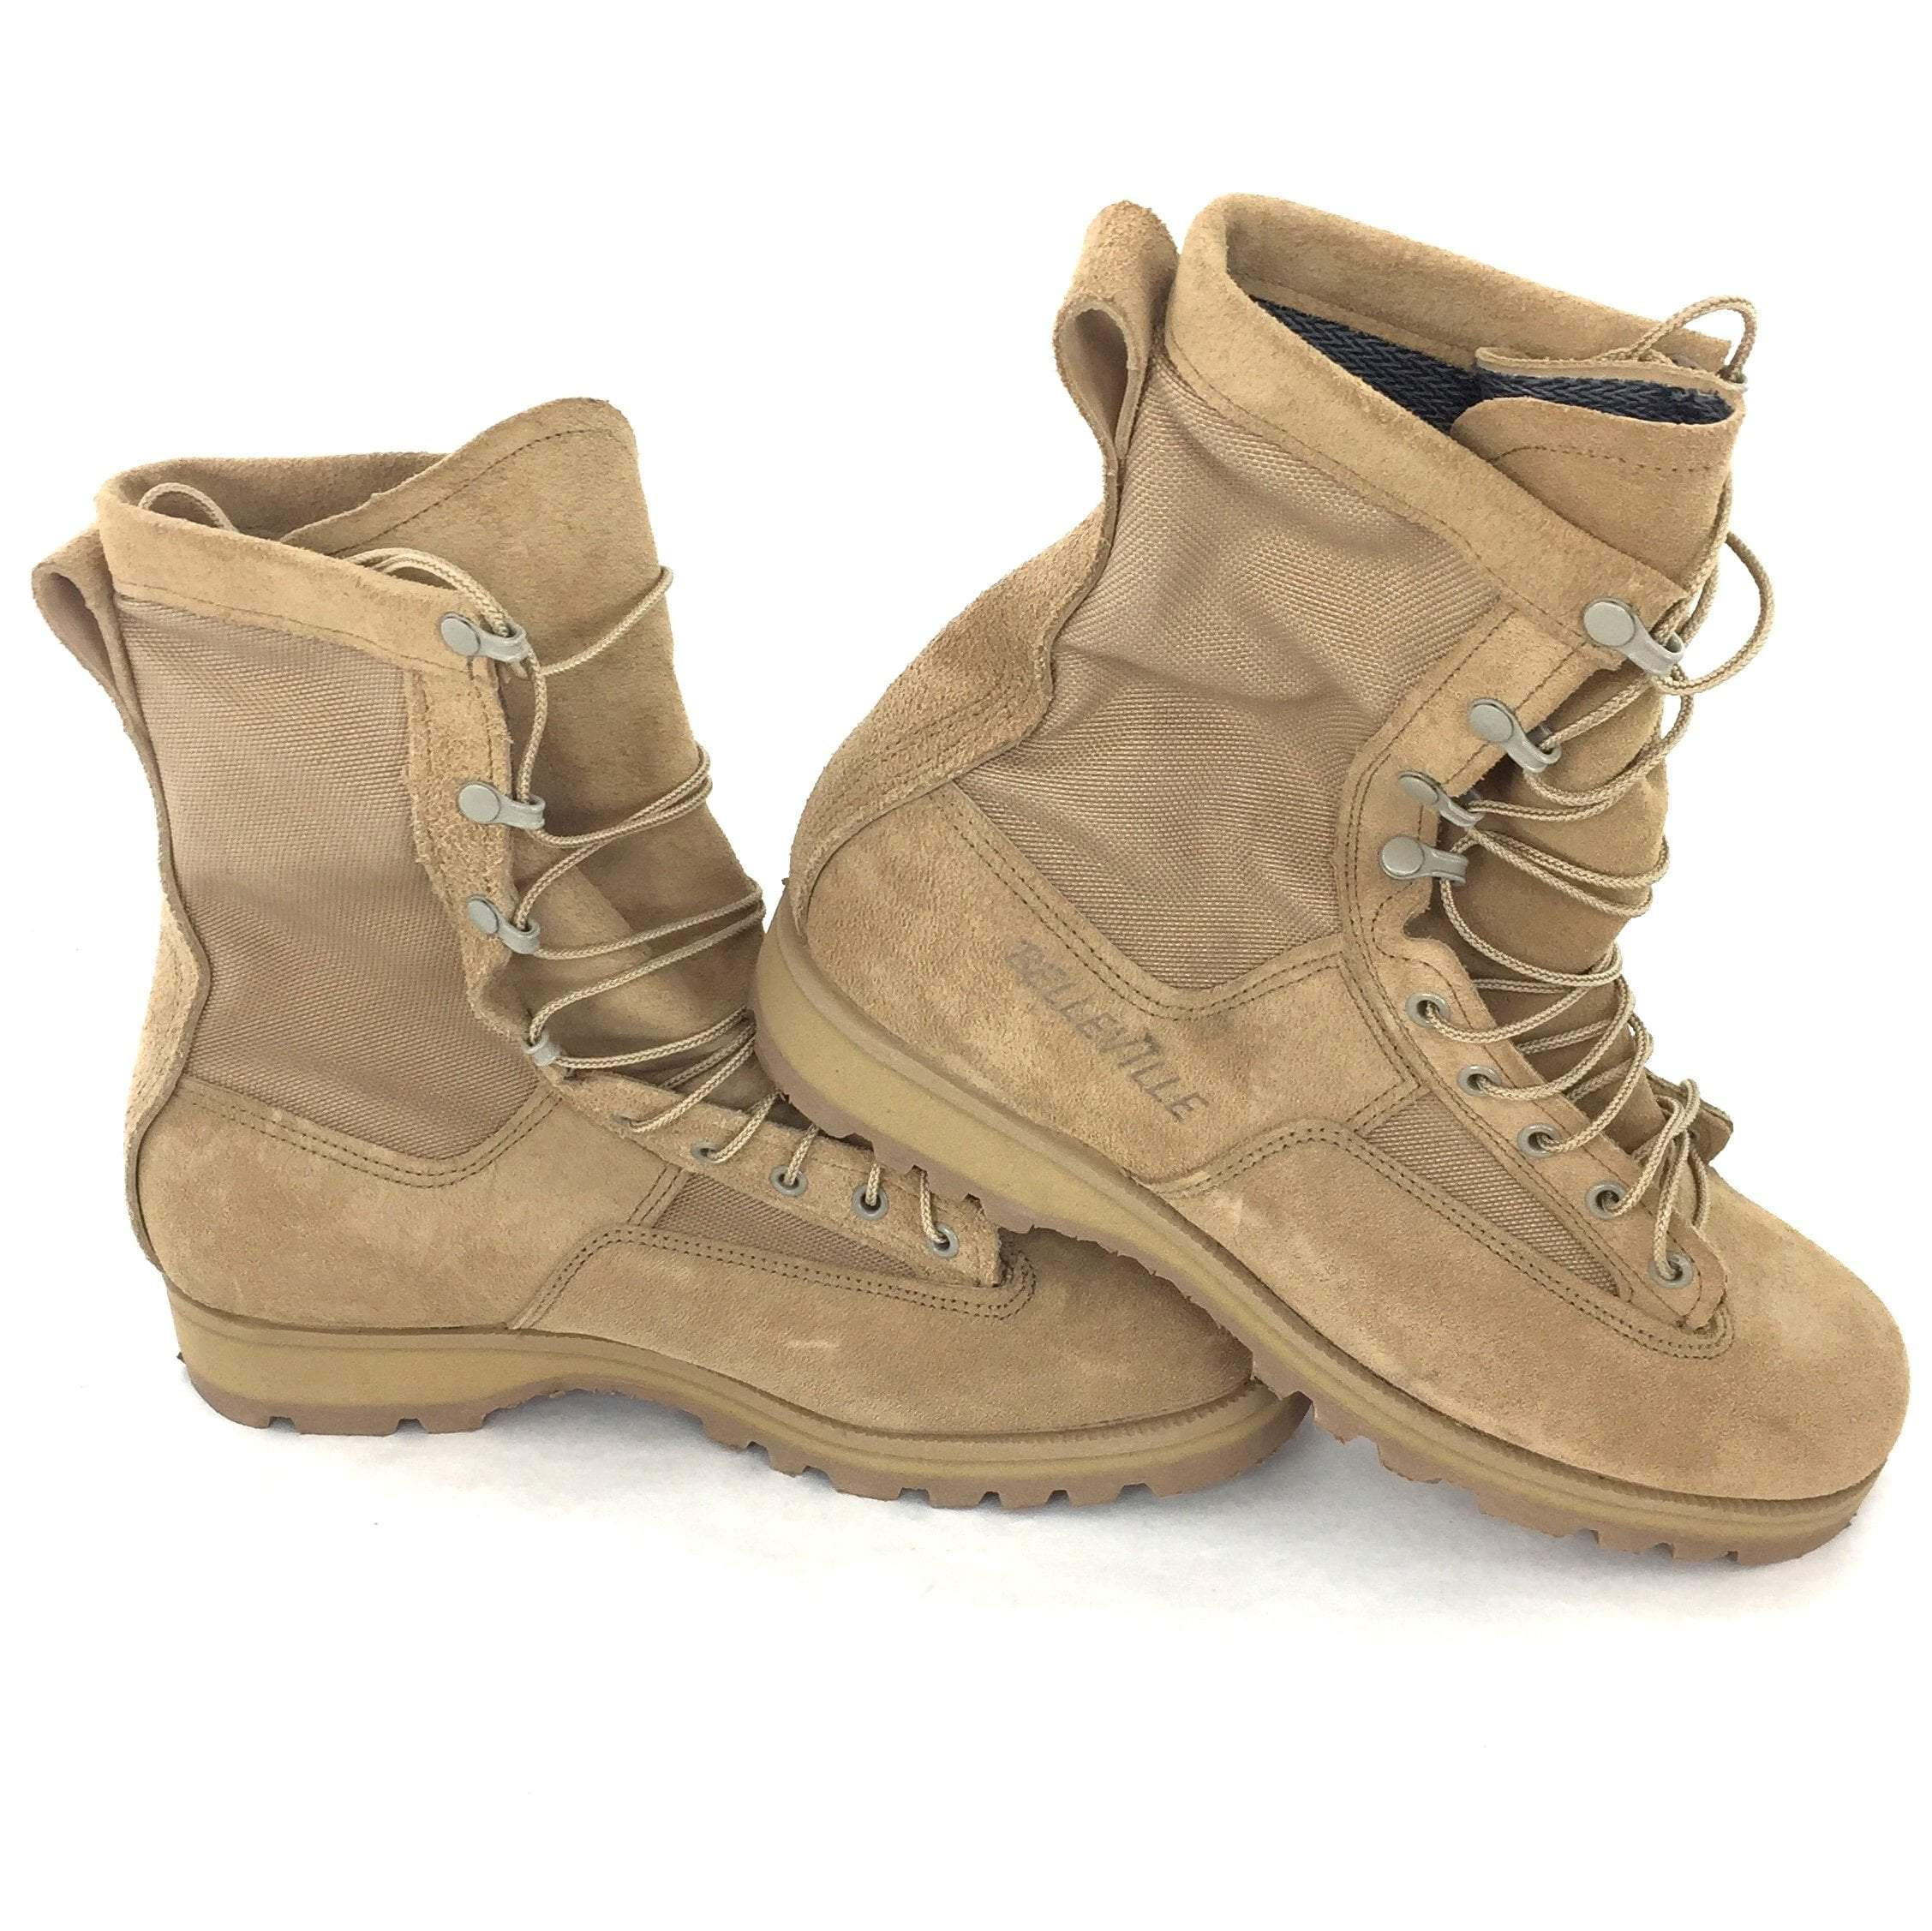 Belleville Temperate Weather Combat Boots, Size 11R Sand Tan, 03-D-0322